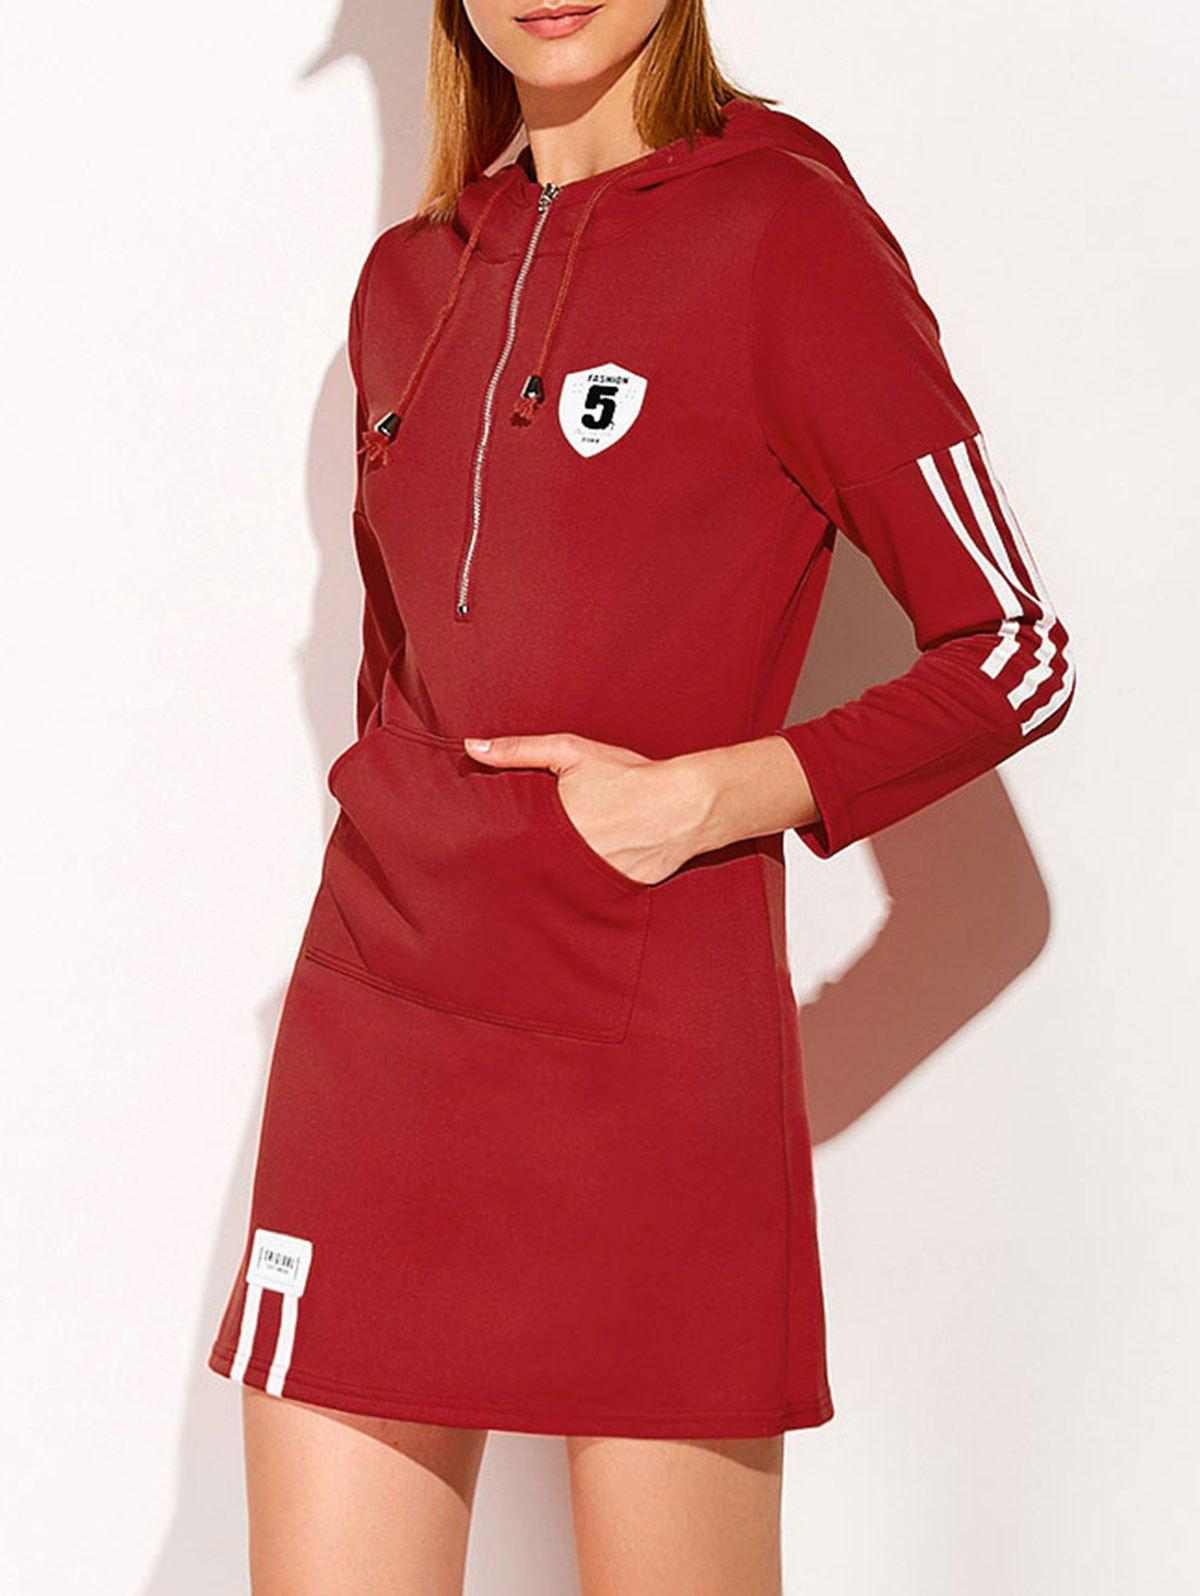 Buy Hooded Zip Striped 5 Graphic Dress